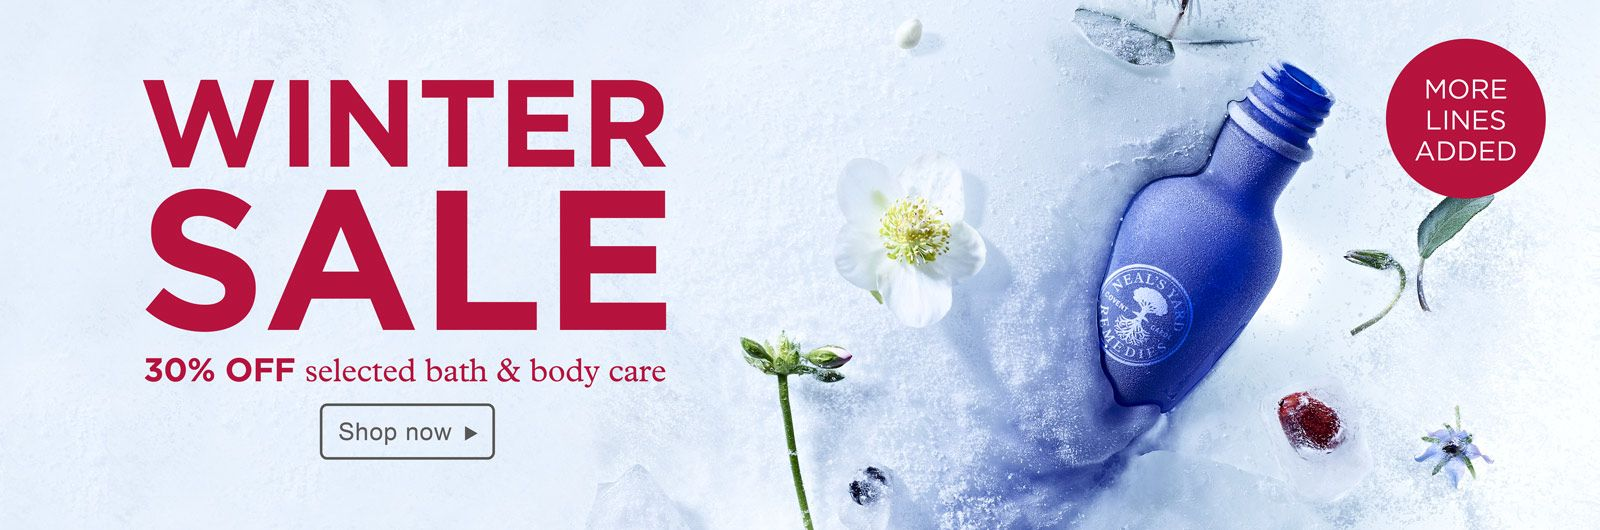 Winter sale at Neals Yard Remedies! Save 30 on selected